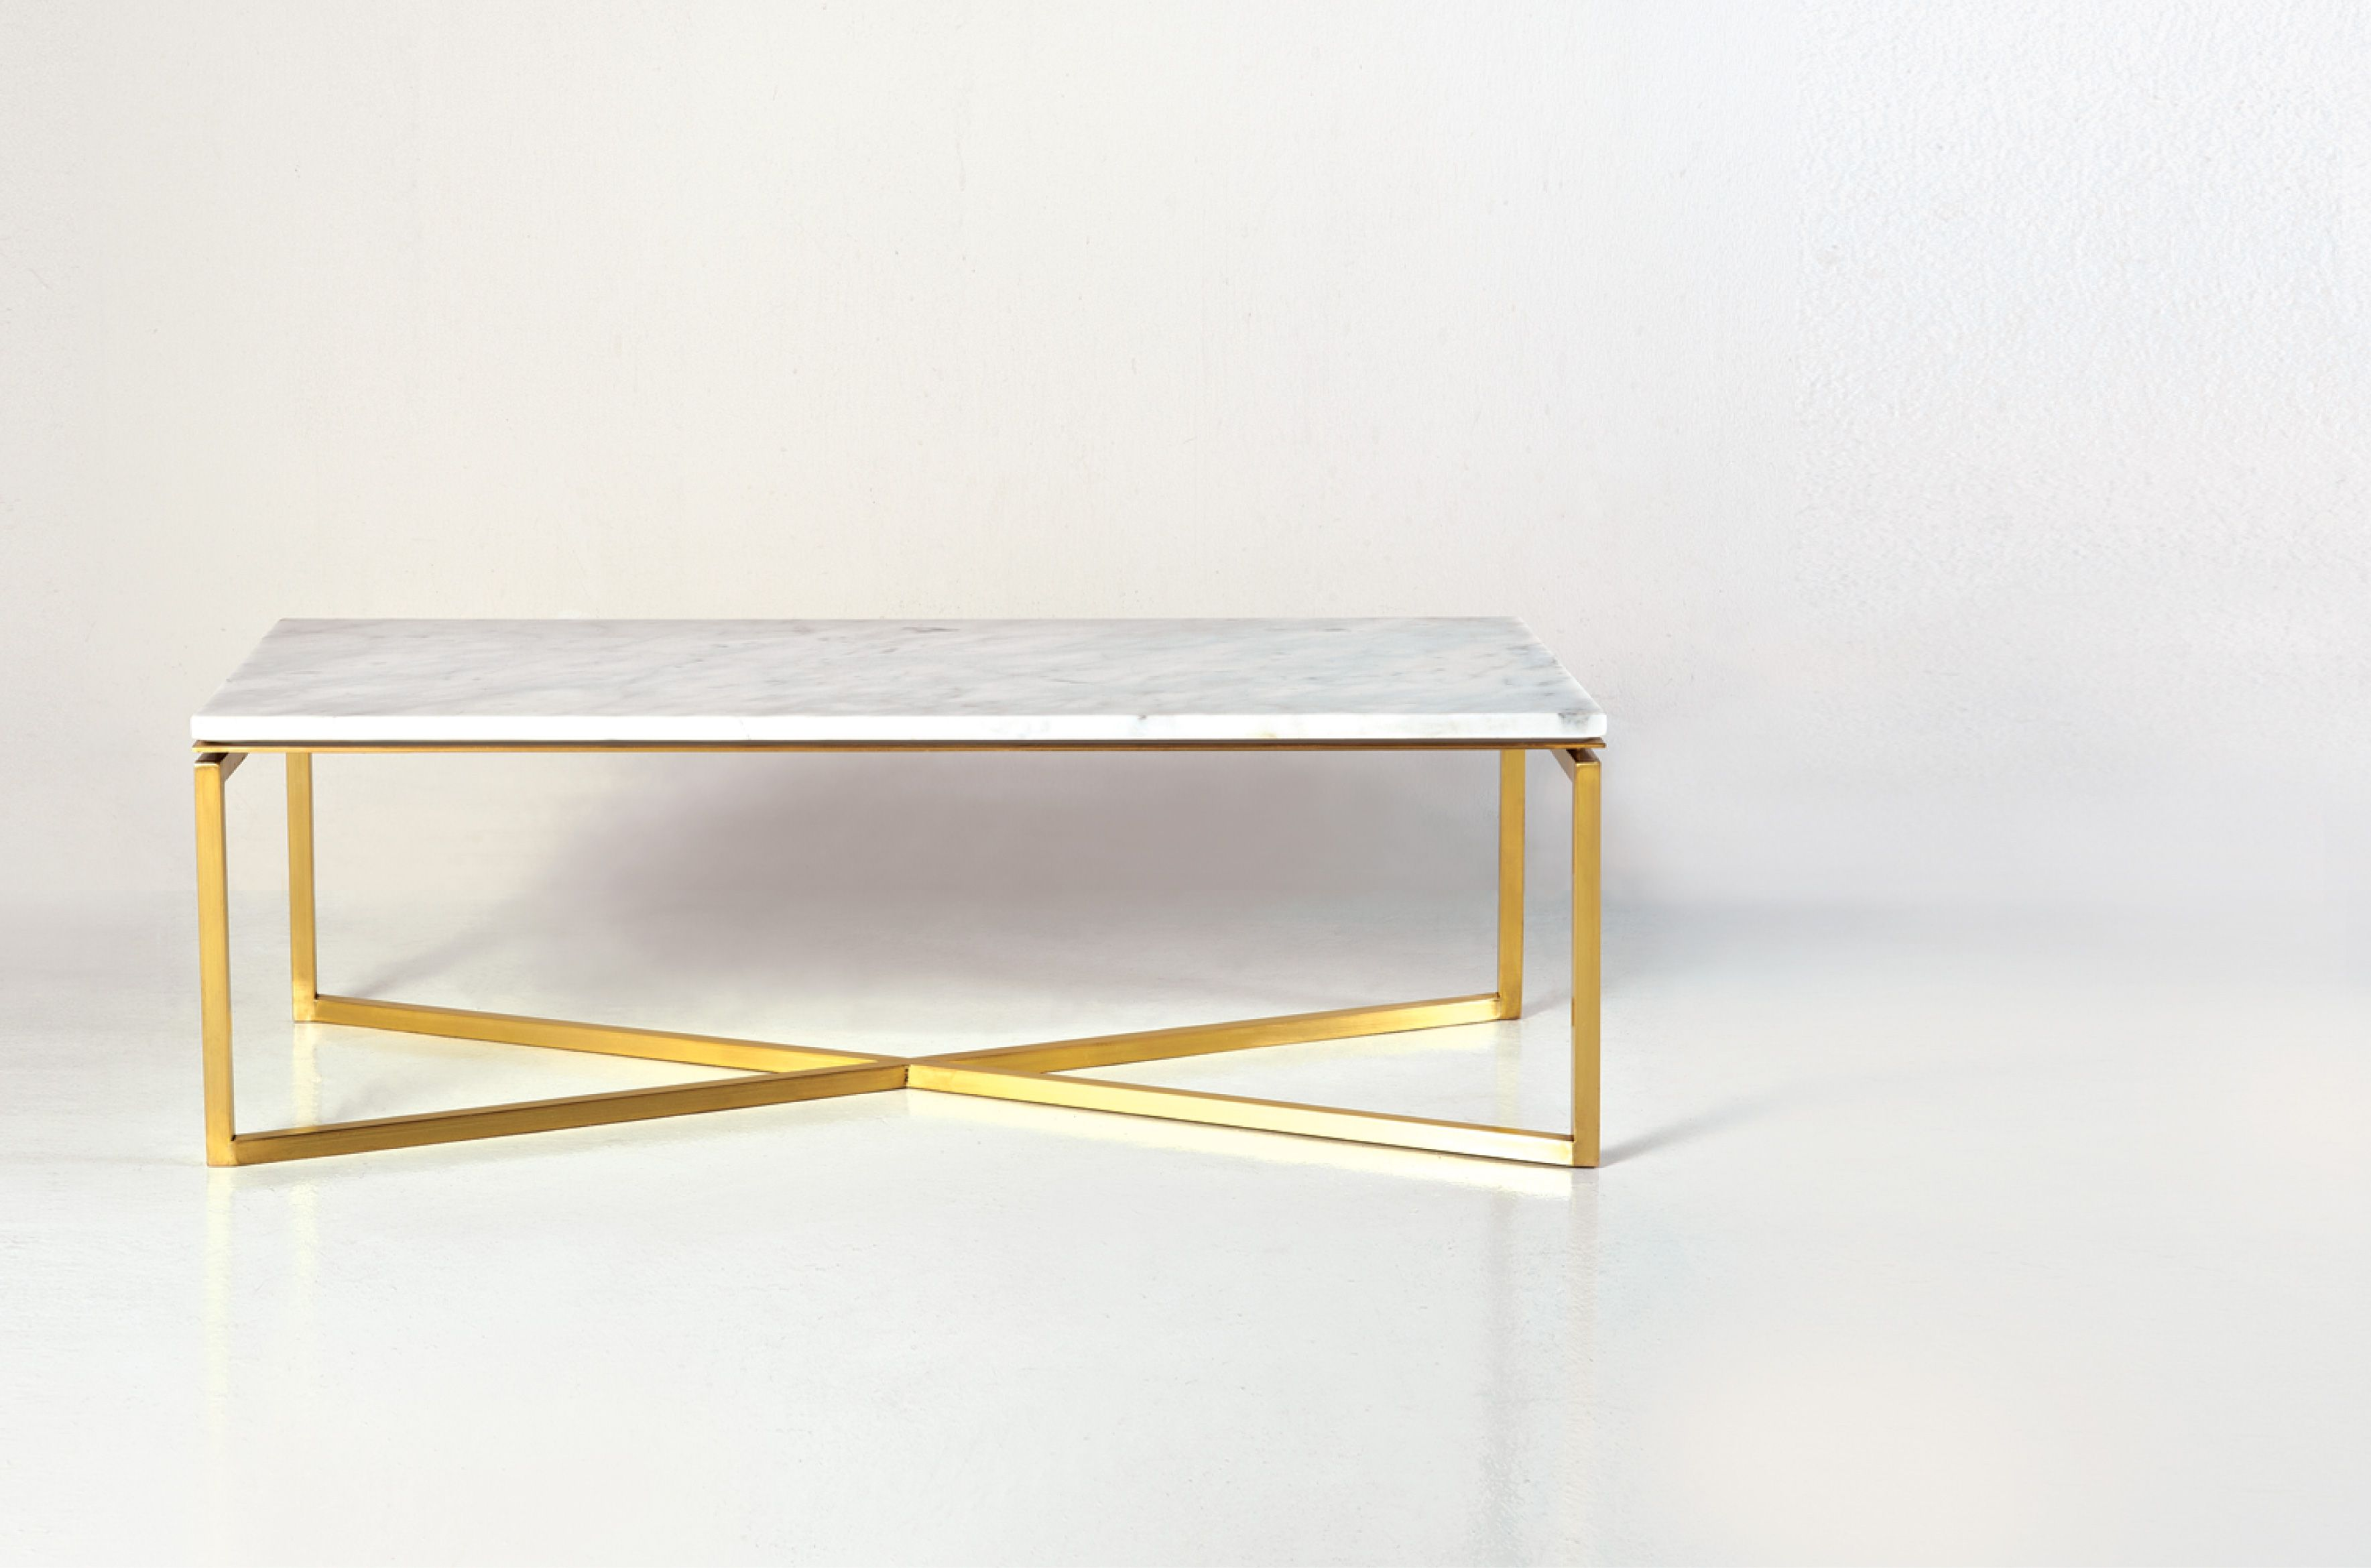 BAGUETTE coffee table Brass leg in Gold finish and white carrara